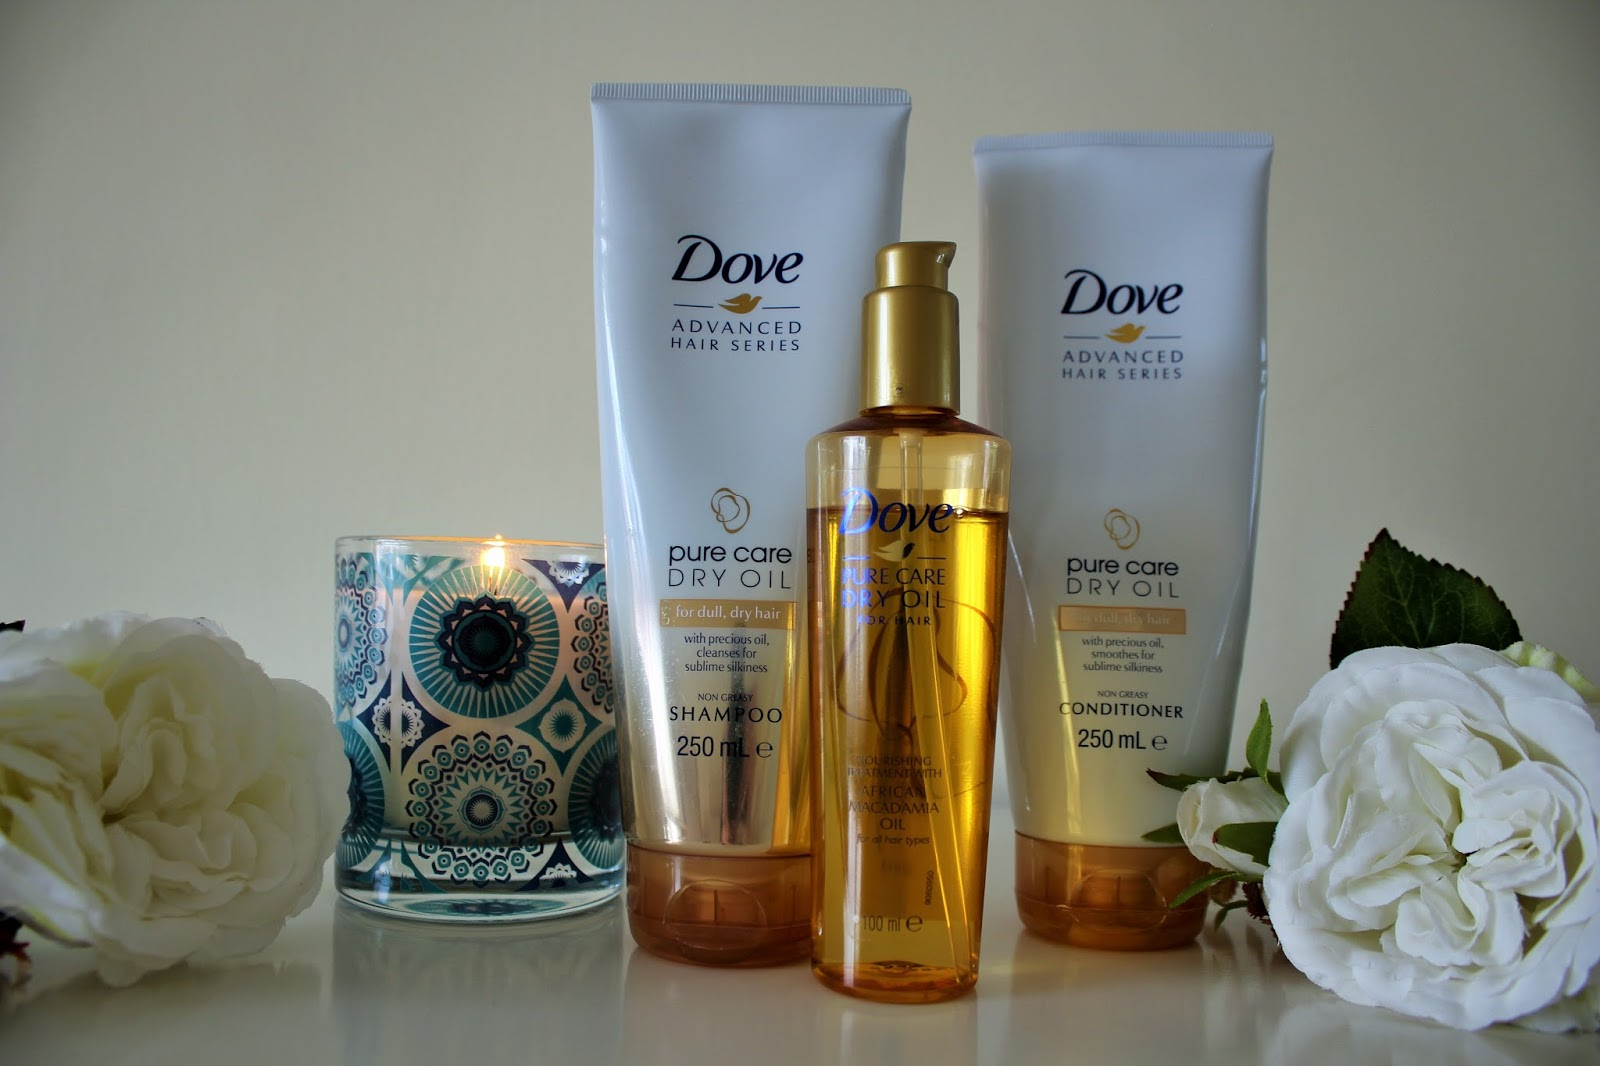 April Favourites 2017 - Dove Dry Oil Hair Care Range - Shampoo, Conditioner and Treatment Oil